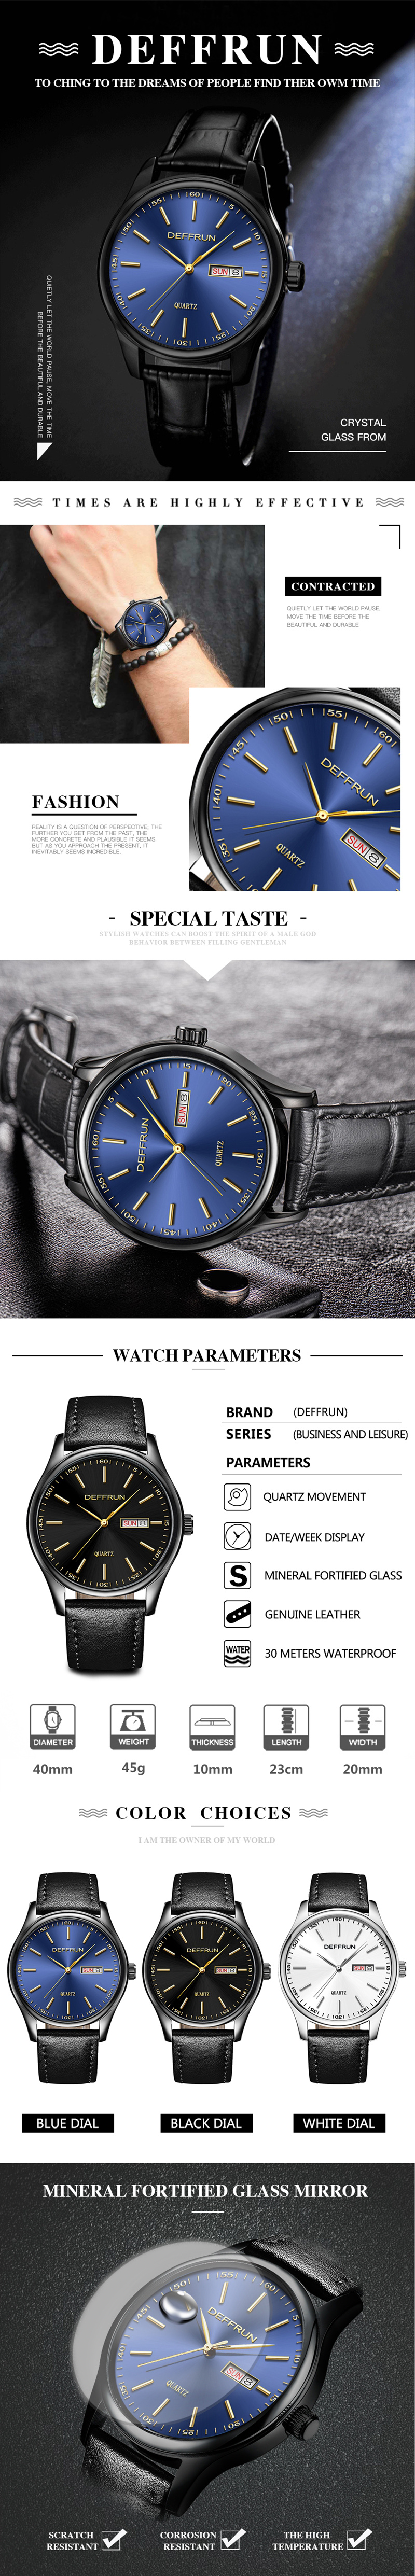 DEFFRUN DQ0006 Calendar Casual Style Leather Strap Men Watch